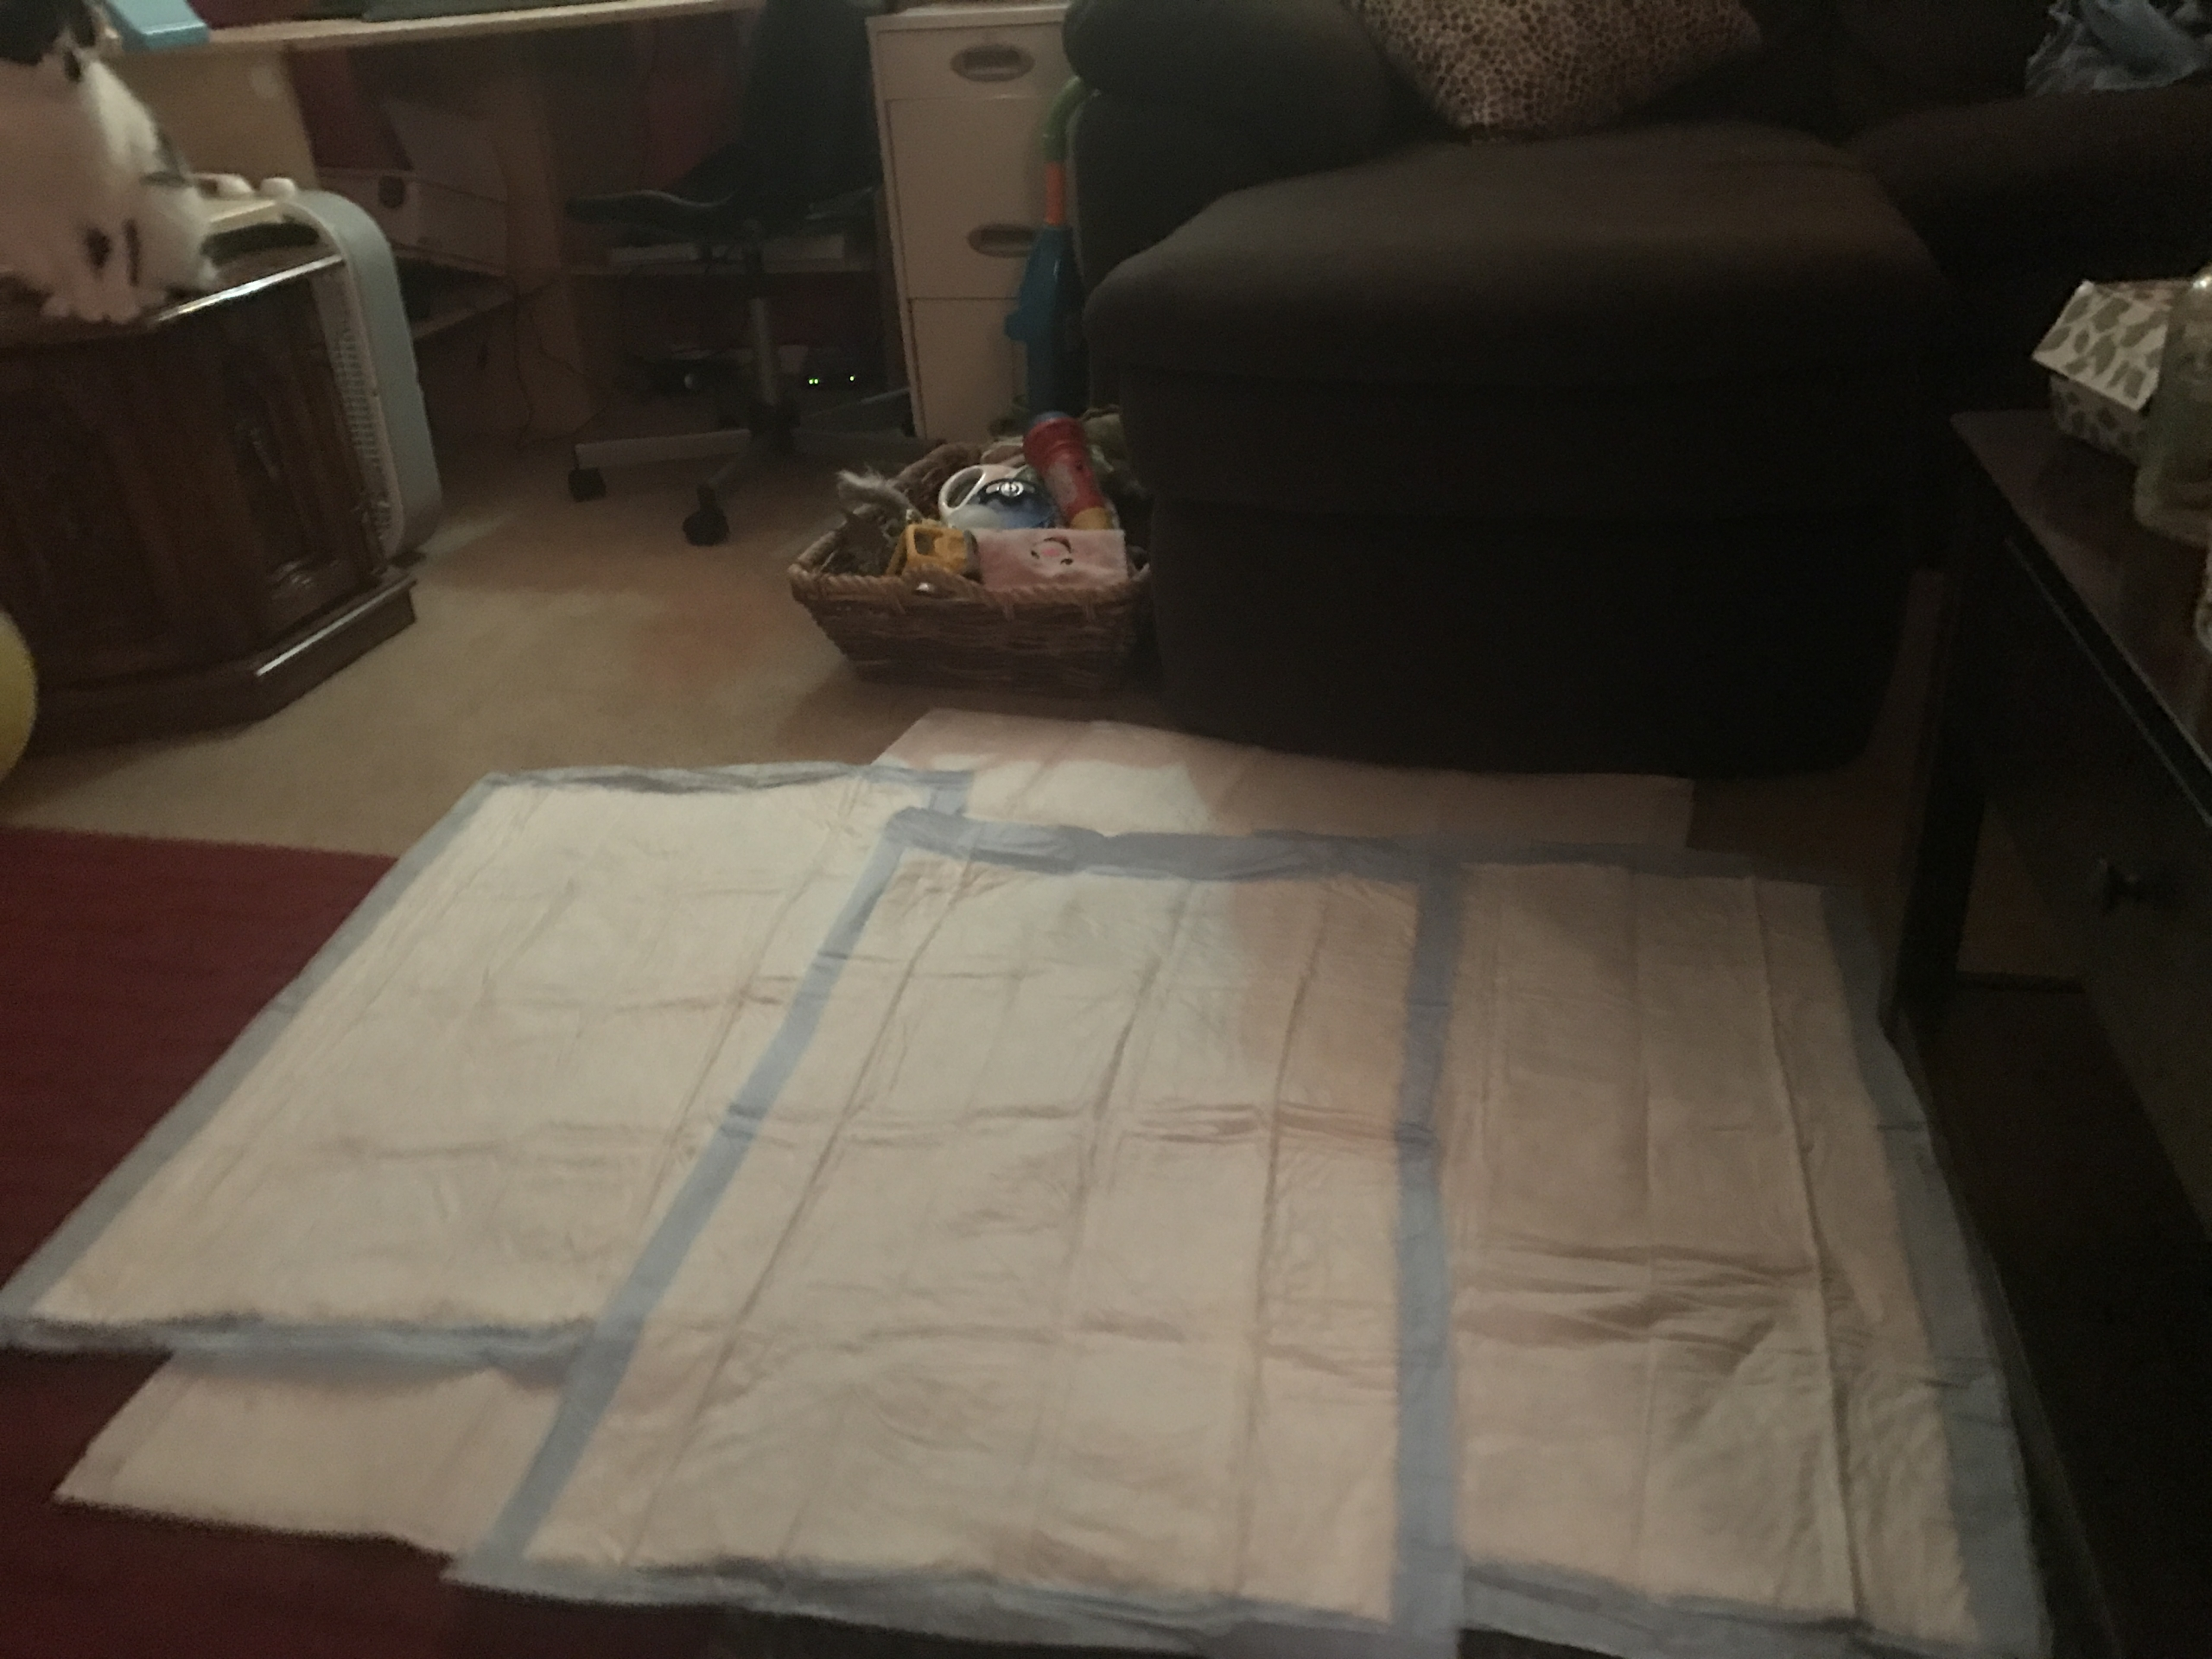 Laying out Chux Pads